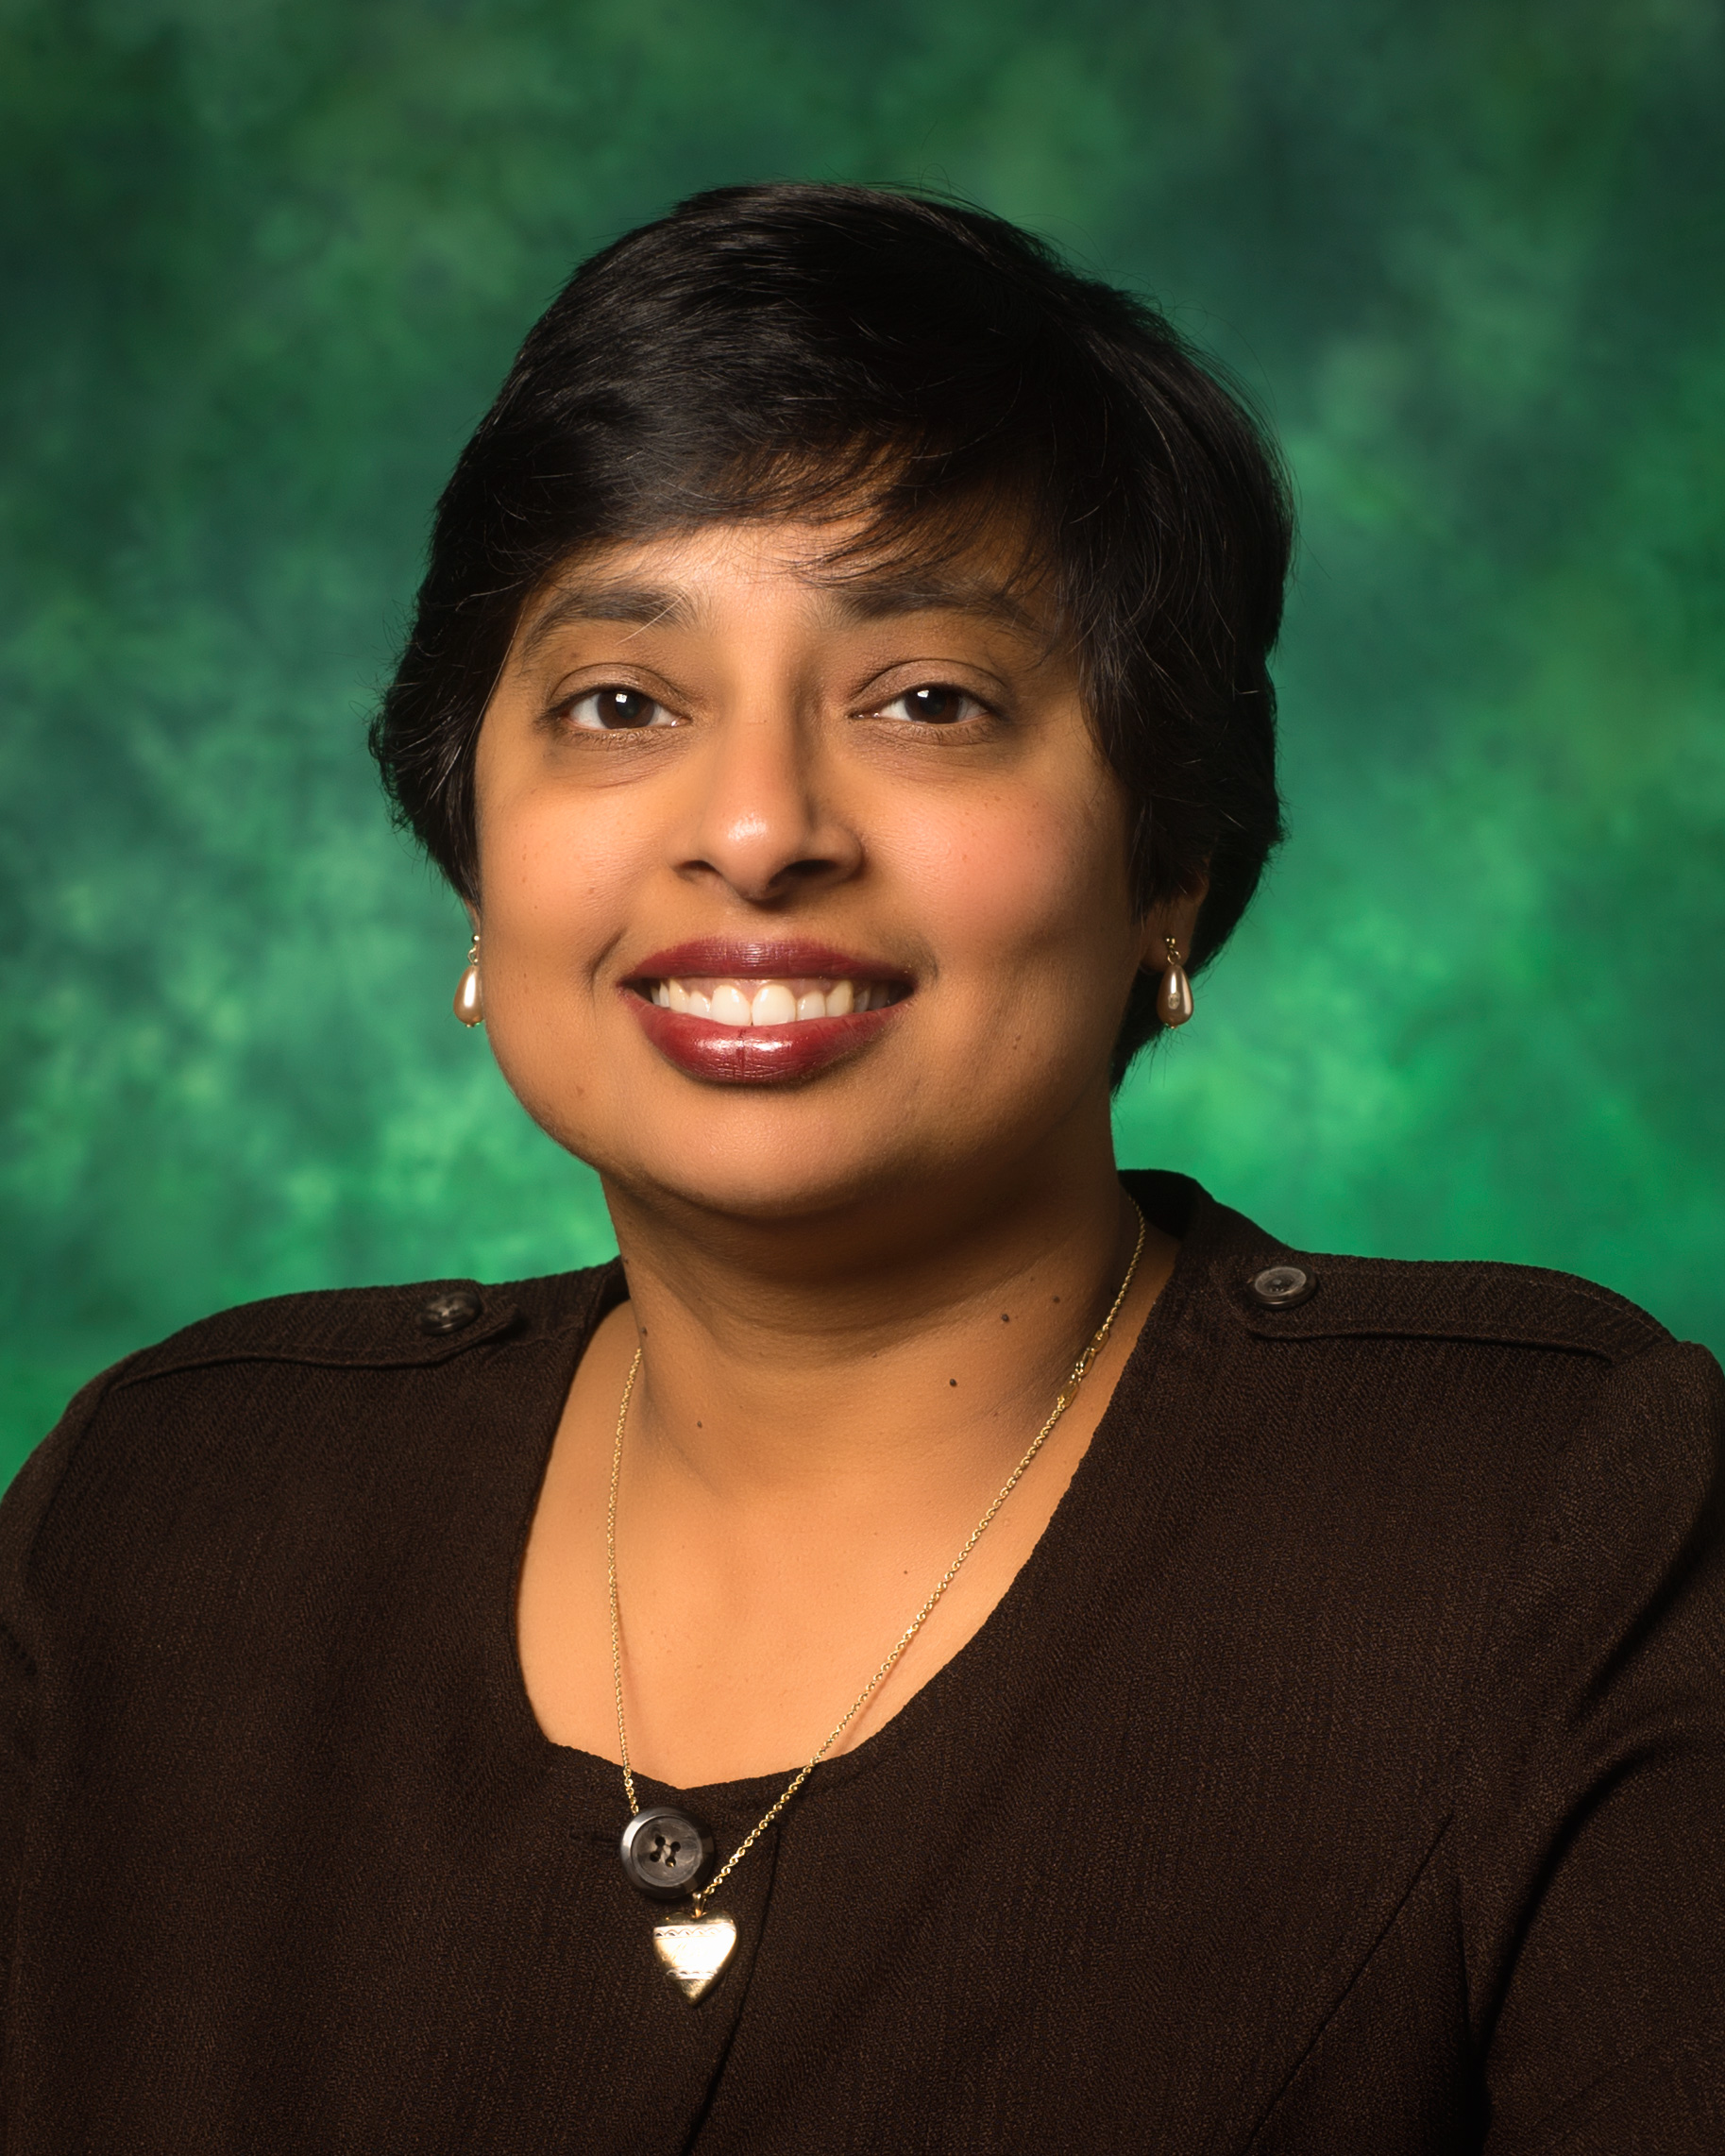 UNT associate dean named to board of prestigious women's engineering organization